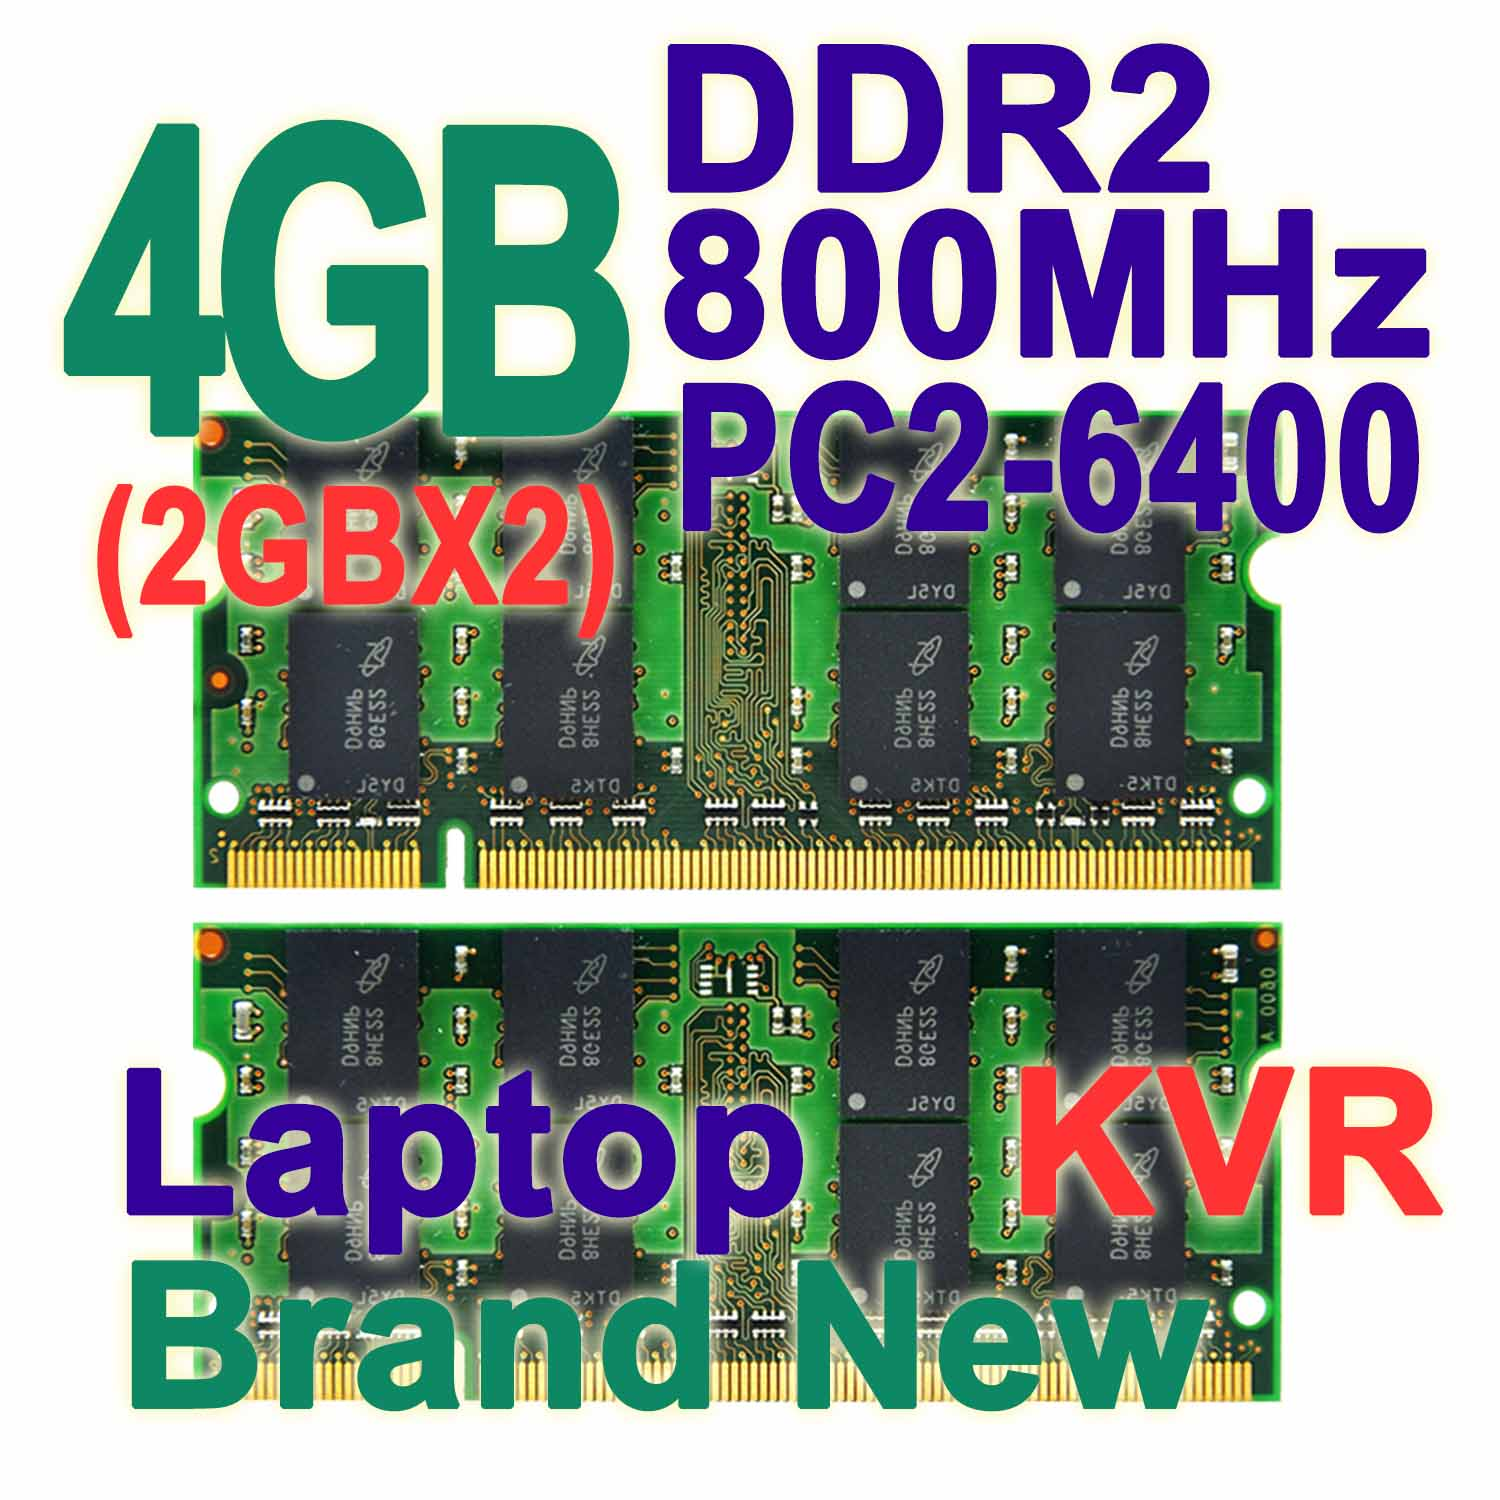 Memoria RAM DDR2 4GB 800 MHz Laptop Kit (2GBX2) Dual Channel 200-pin SODIMM PC2-6400 Non-ECC CL6 For Intel &amp; AMD Notebook KVR<br><br>Aliexpress